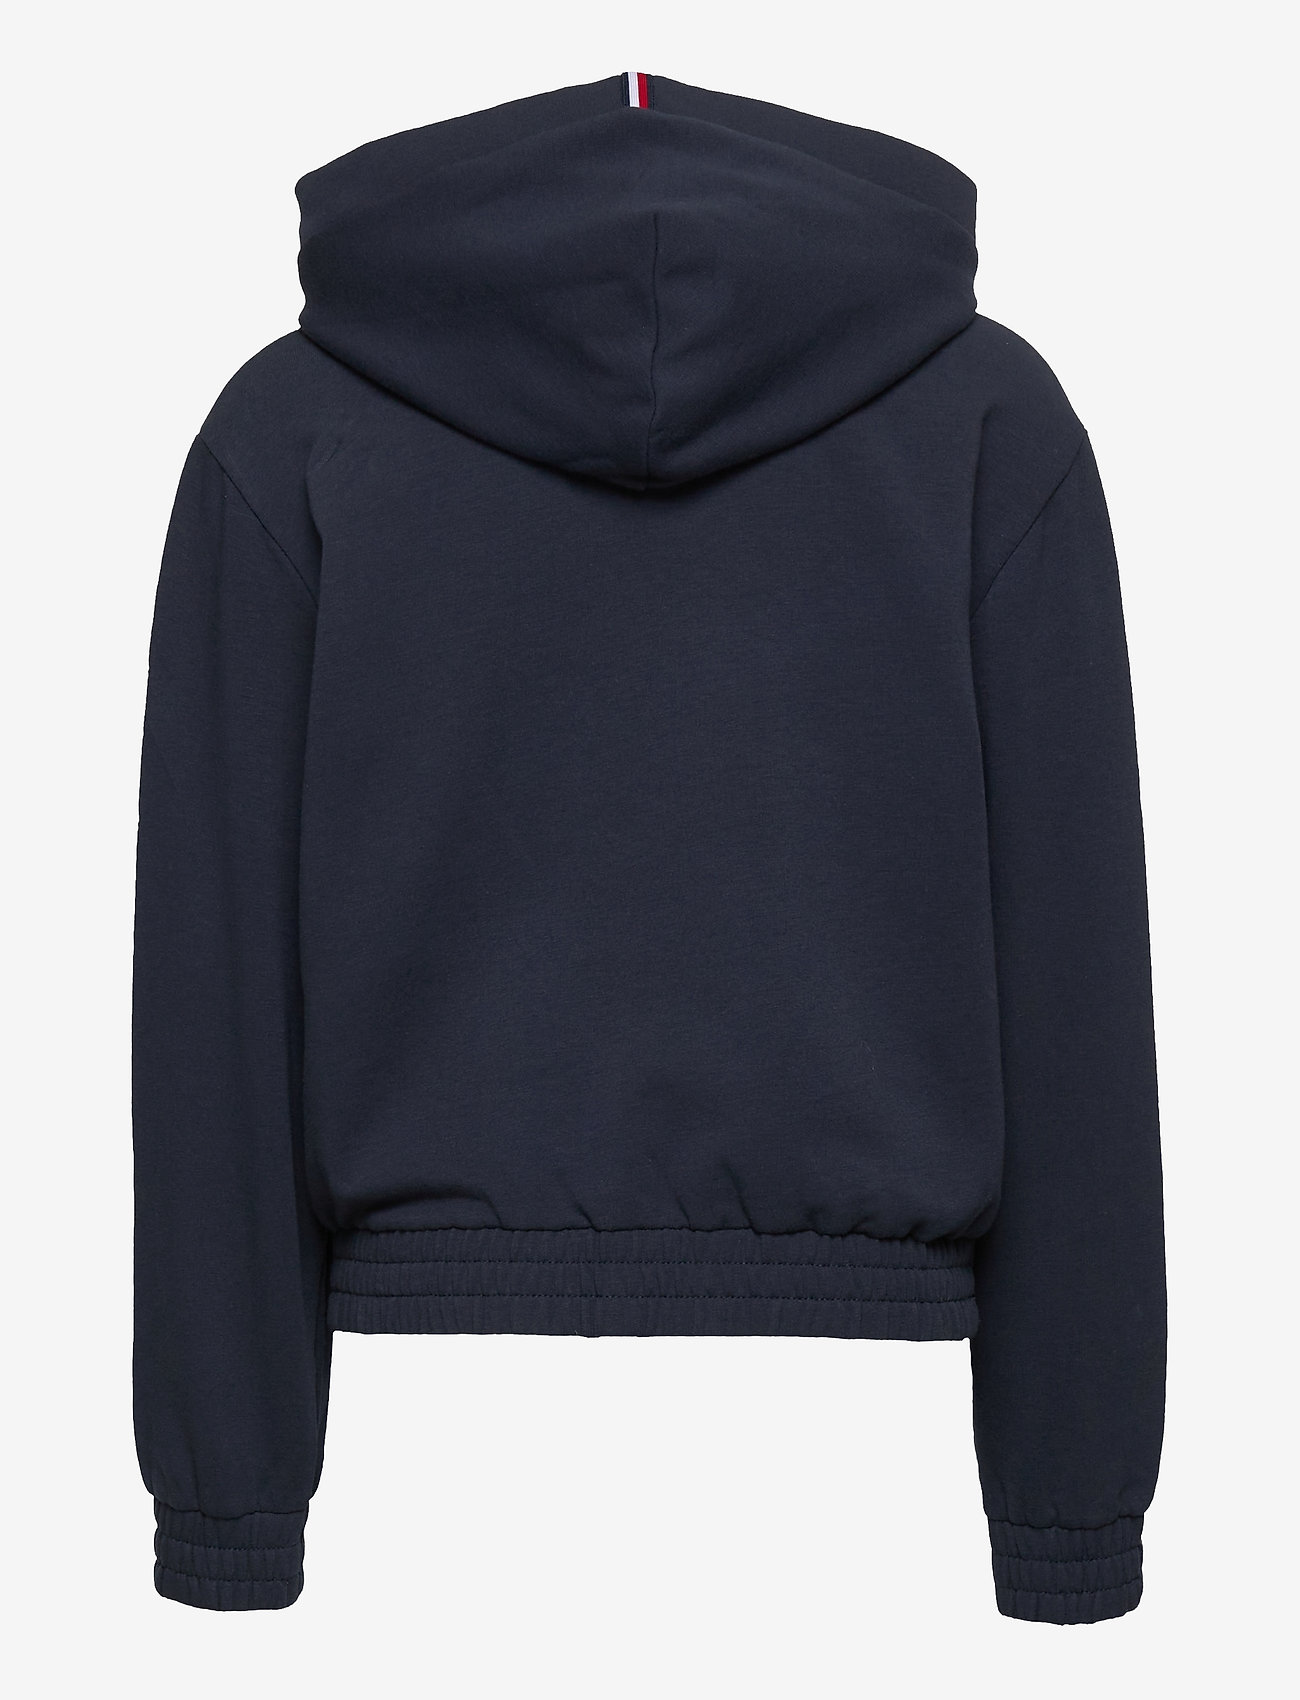 Tommy Hilfiger - ESSENTIAL HOODED SWEATSHIRT - kapuzenpullover - twilight navy - 1